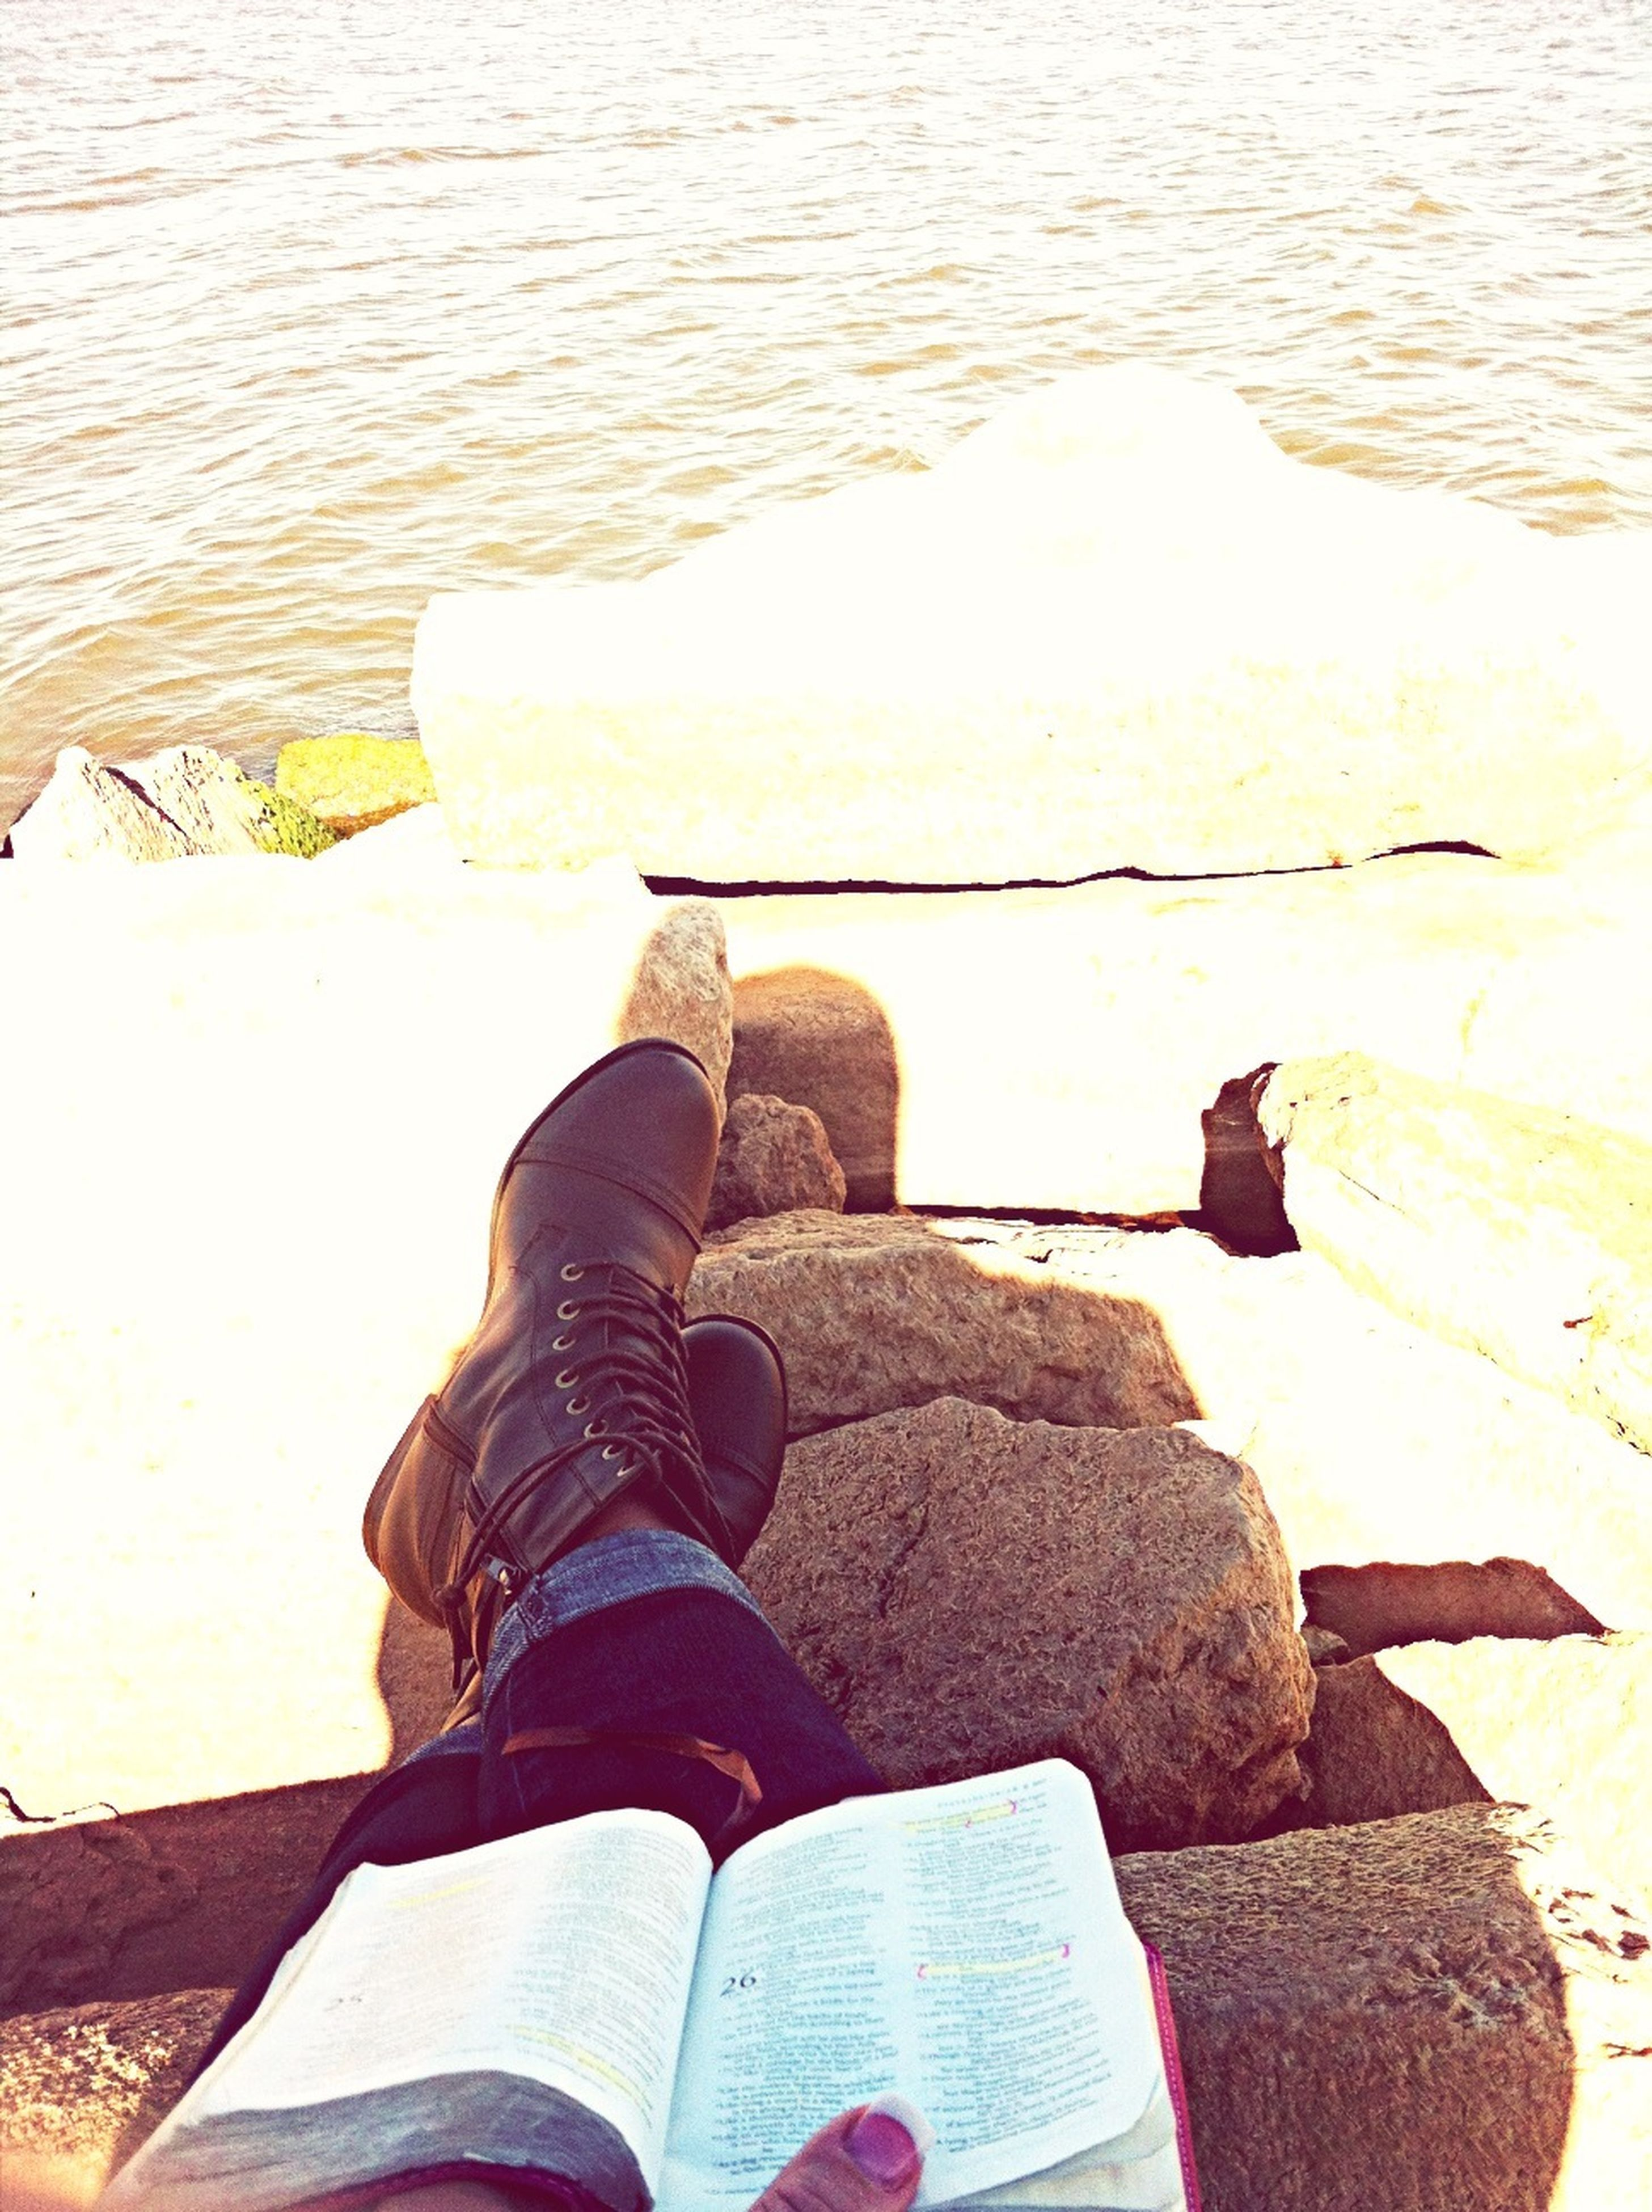 water, high angle view, low section, person, lifestyles, personal perspective, shoe, standing, leisure activity, men, sea, human foot, footwear, day, lake, unrecognizable person, relaxation, outdoors